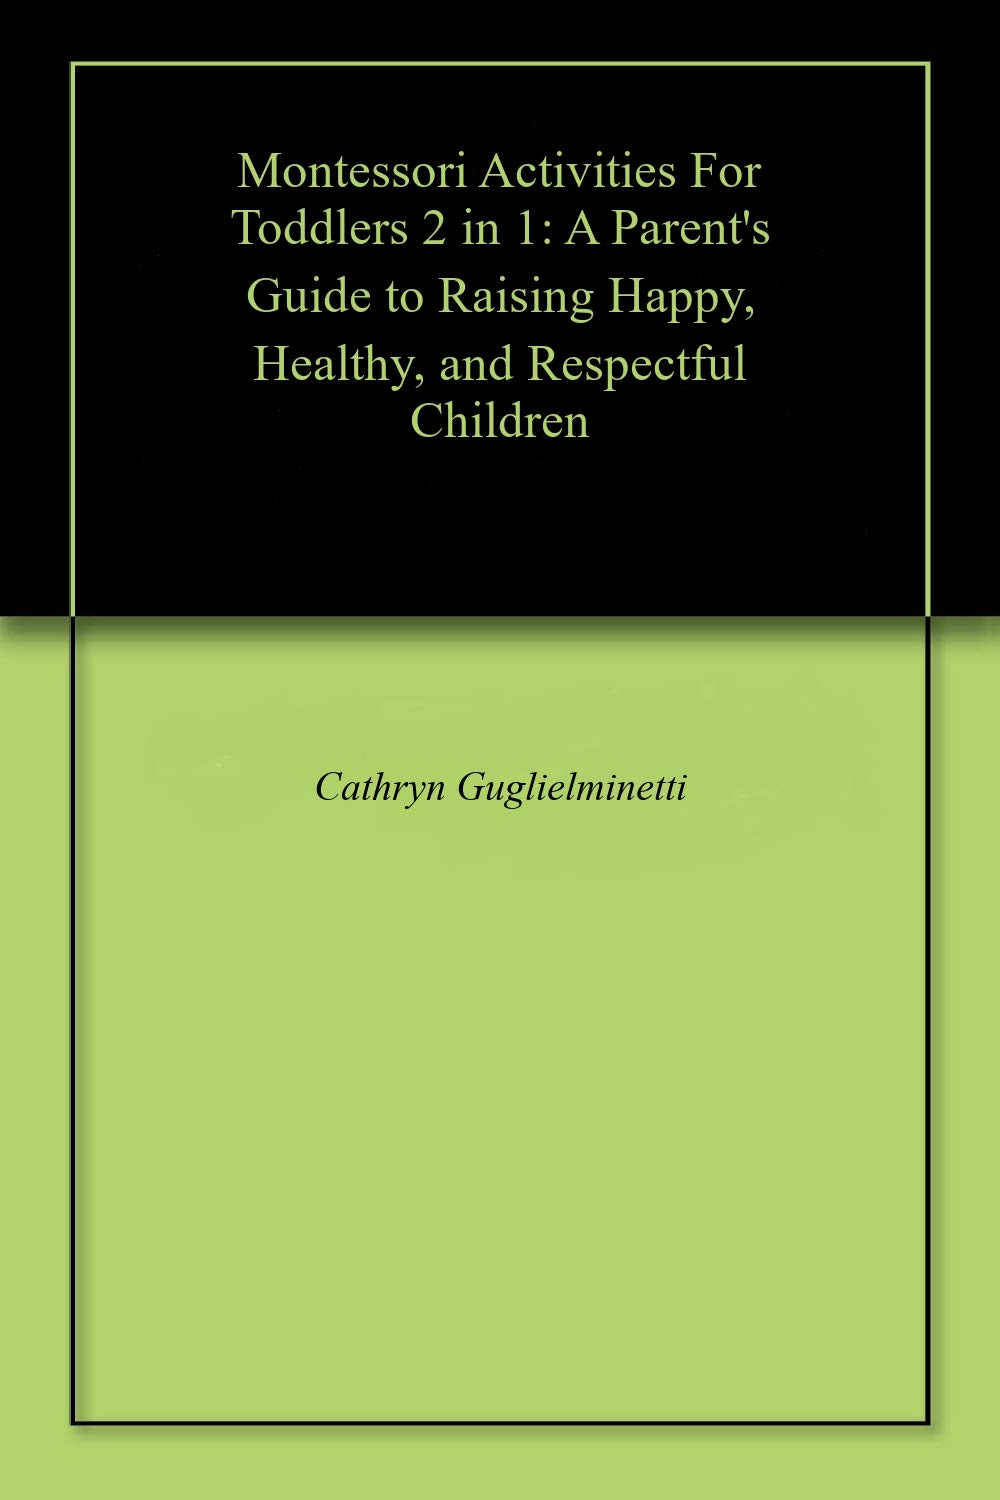 Montessori Activities For Toddlers 2 in 1: A Parent's Guide to Raising Happy, Healthy, and Respectful Children